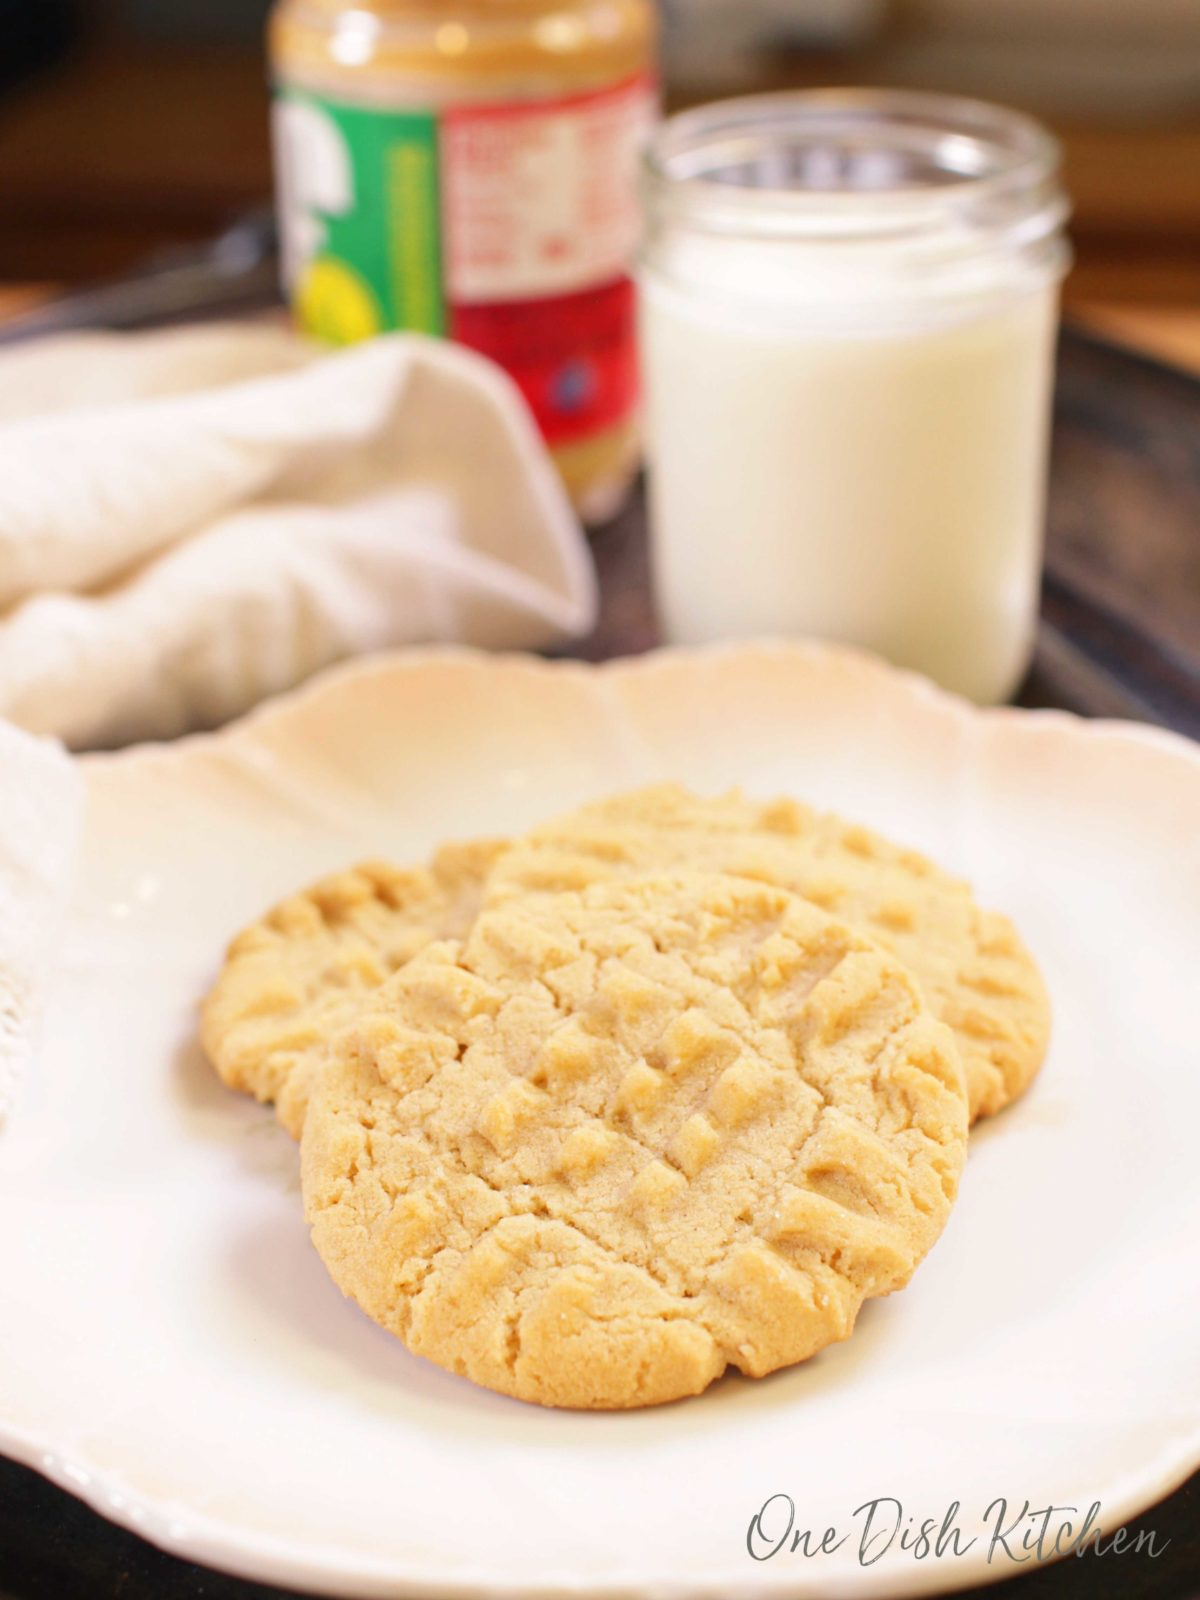 Three peanut butter cookies on a plate next to a jar of peanut butter and a glass of milk.